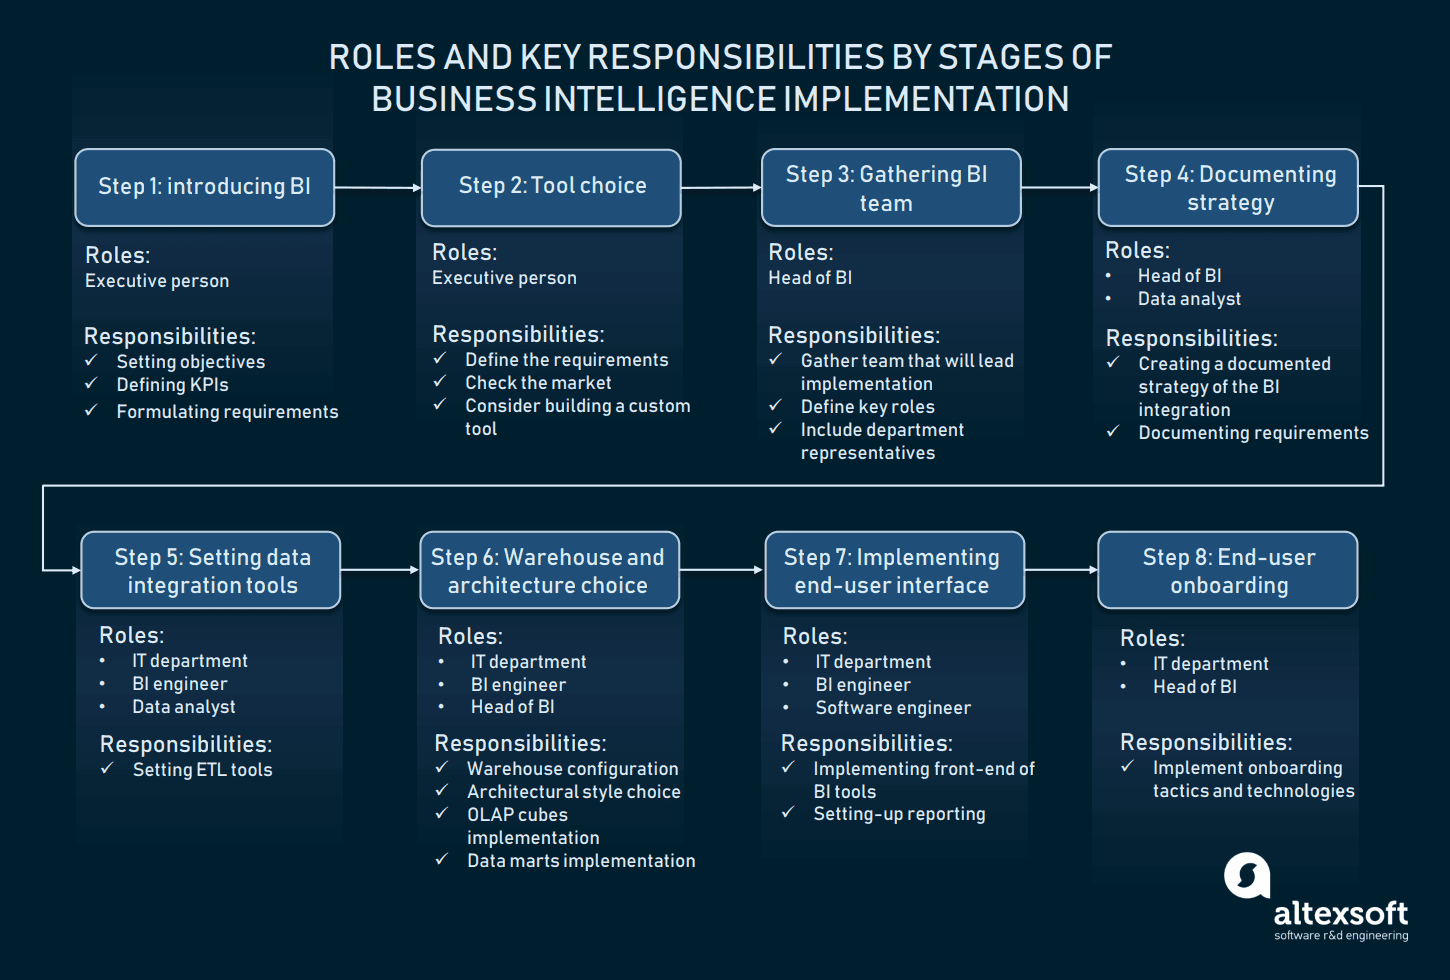 A scheme of business intelligence implementation by roles and stages